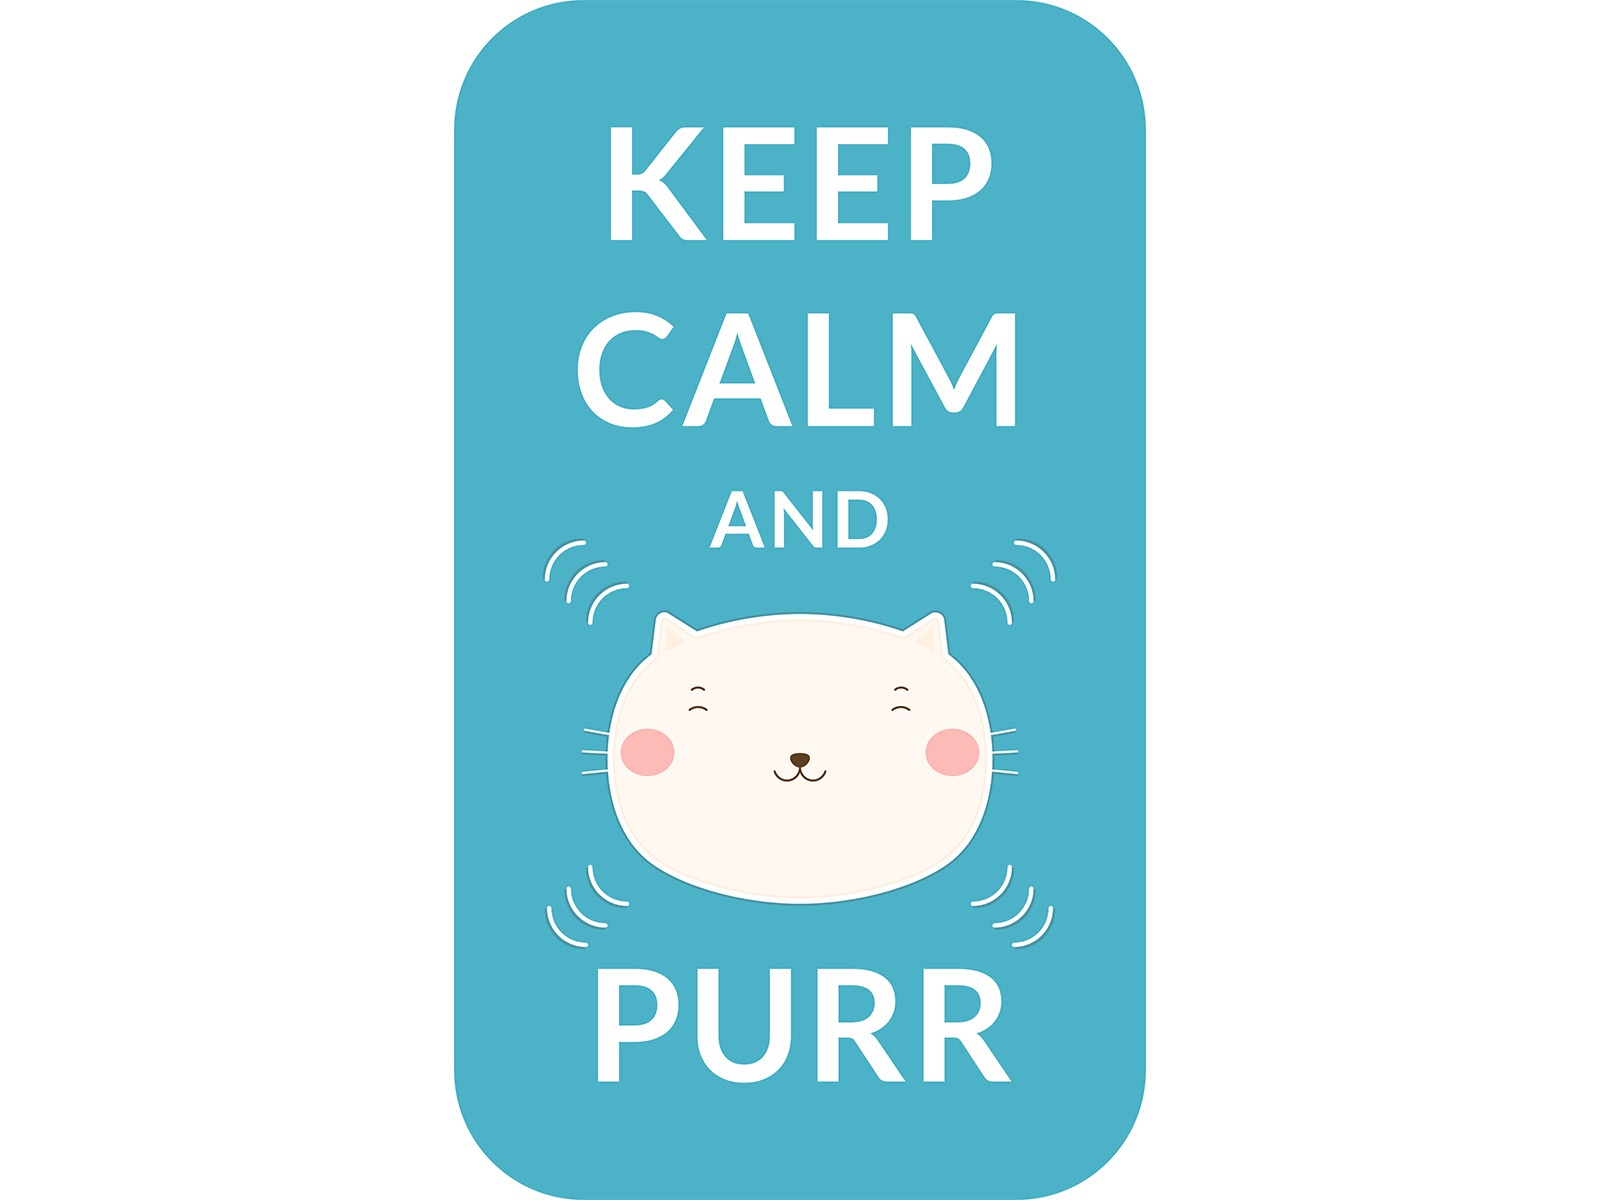 Keep Calm and Purr cute cat pun